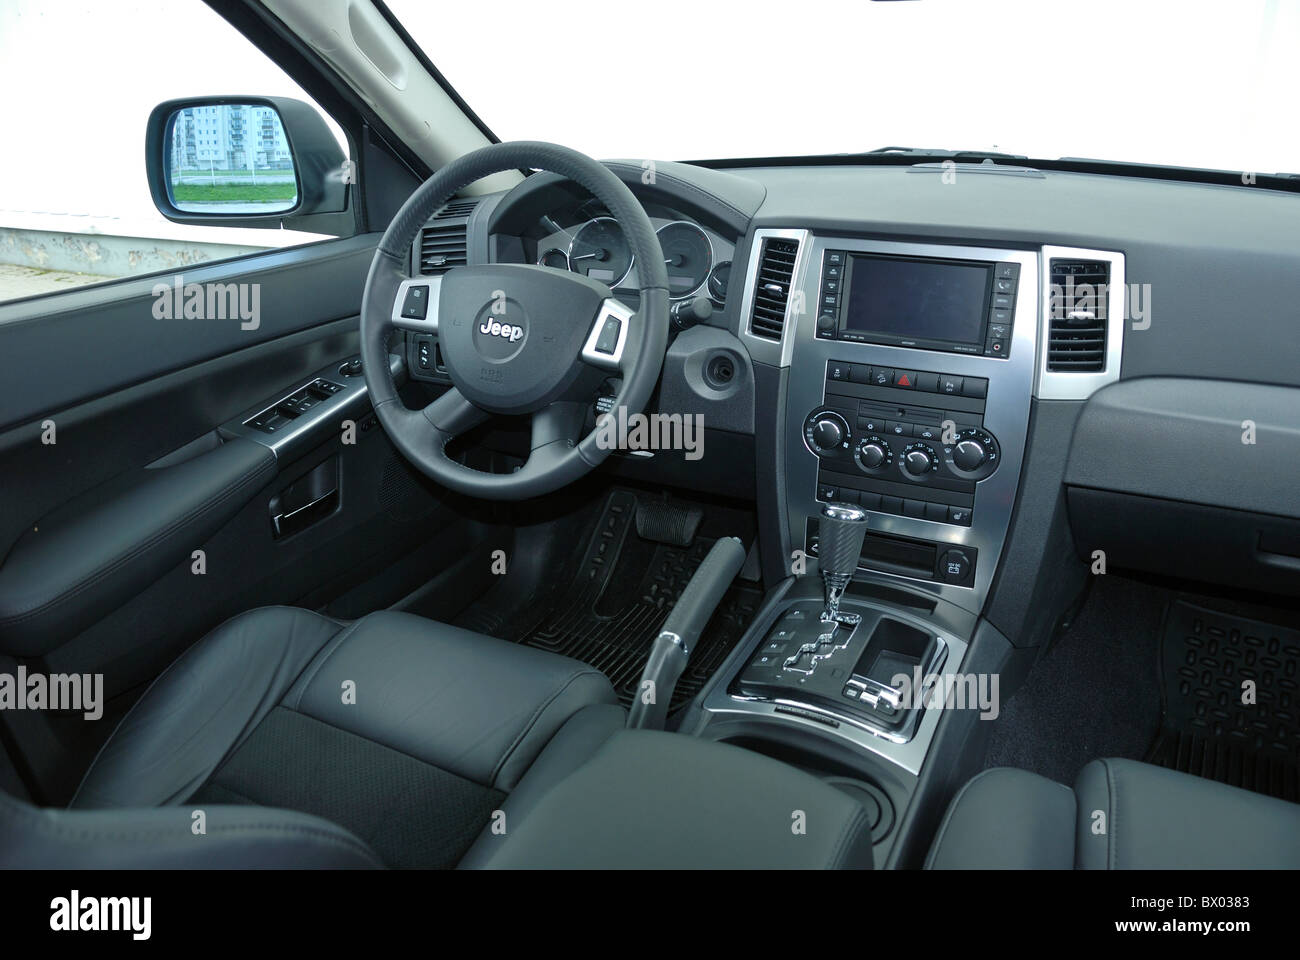 jeep grand cherokee 3 0 crd my 2005 wk us popular. Black Bedroom Furniture Sets. Home Design Ideas